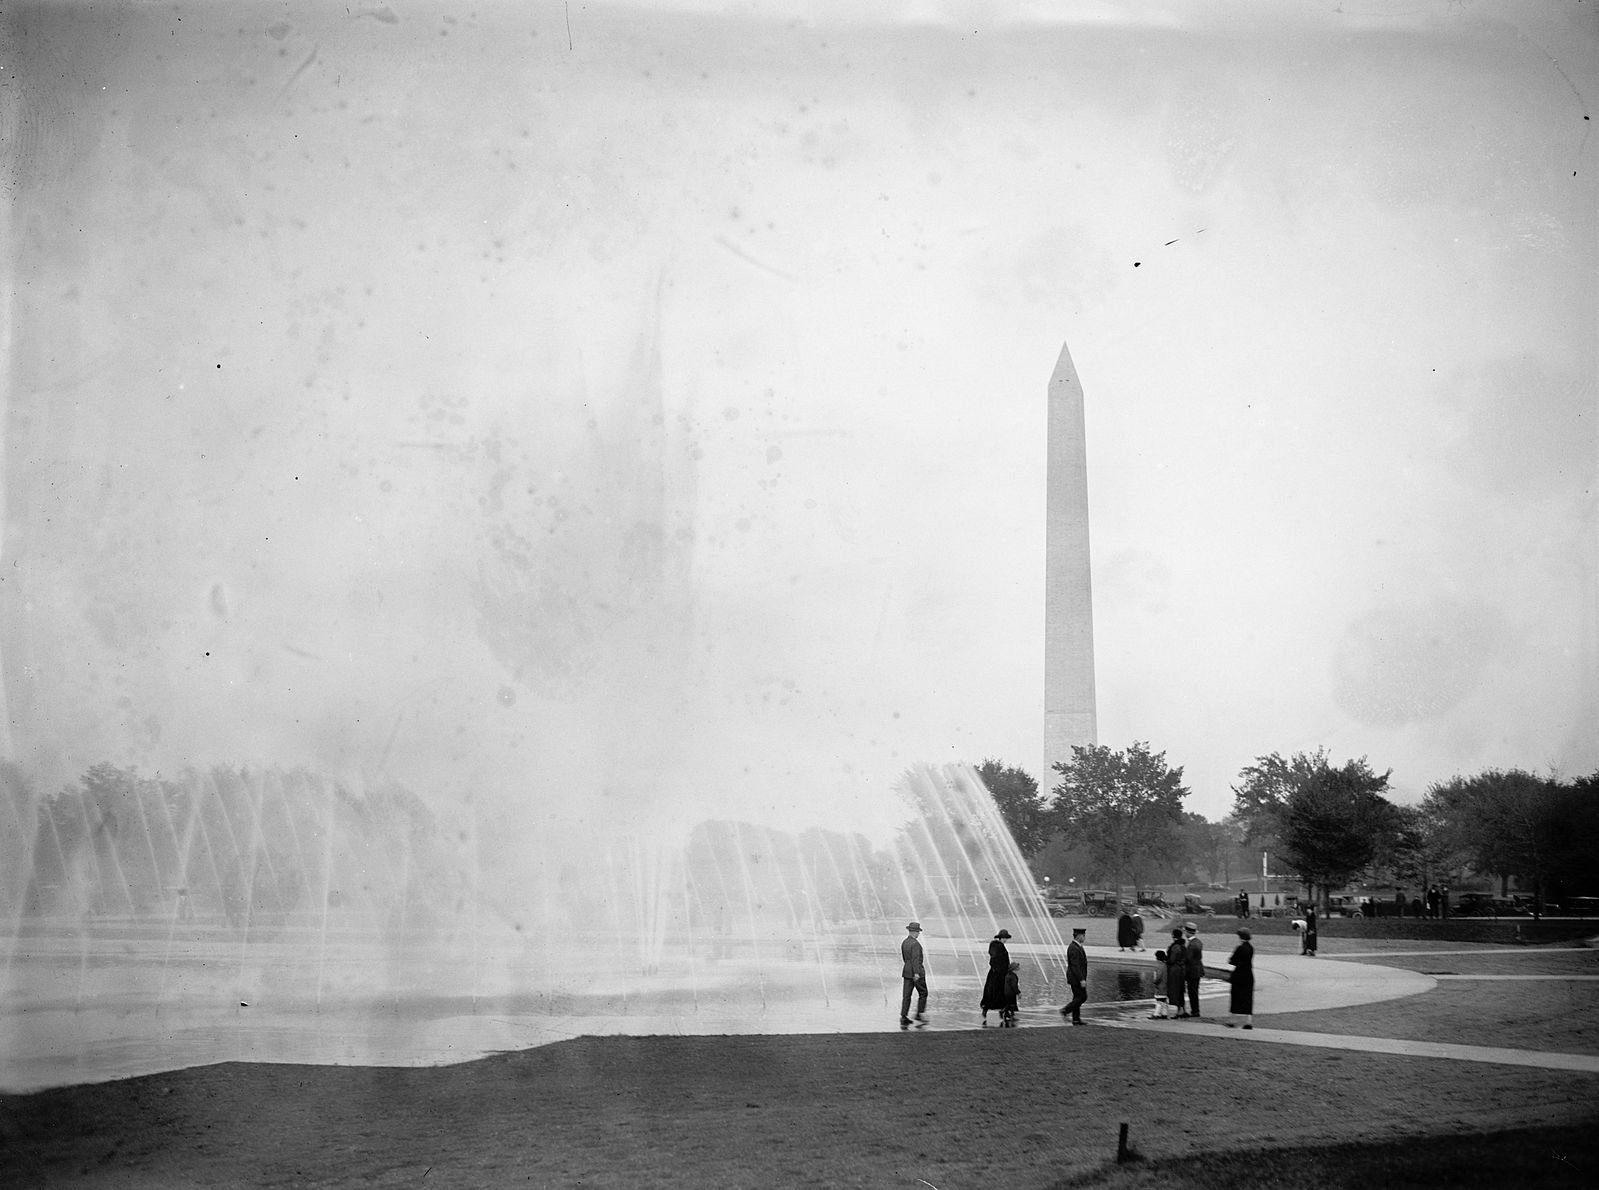 The Rainbow Pool, named for the colored rays that appeared in the sunshine, was built in 1912 and later incorporated in the National World War II Memorial. Photo courtesy of the Library of Congress.